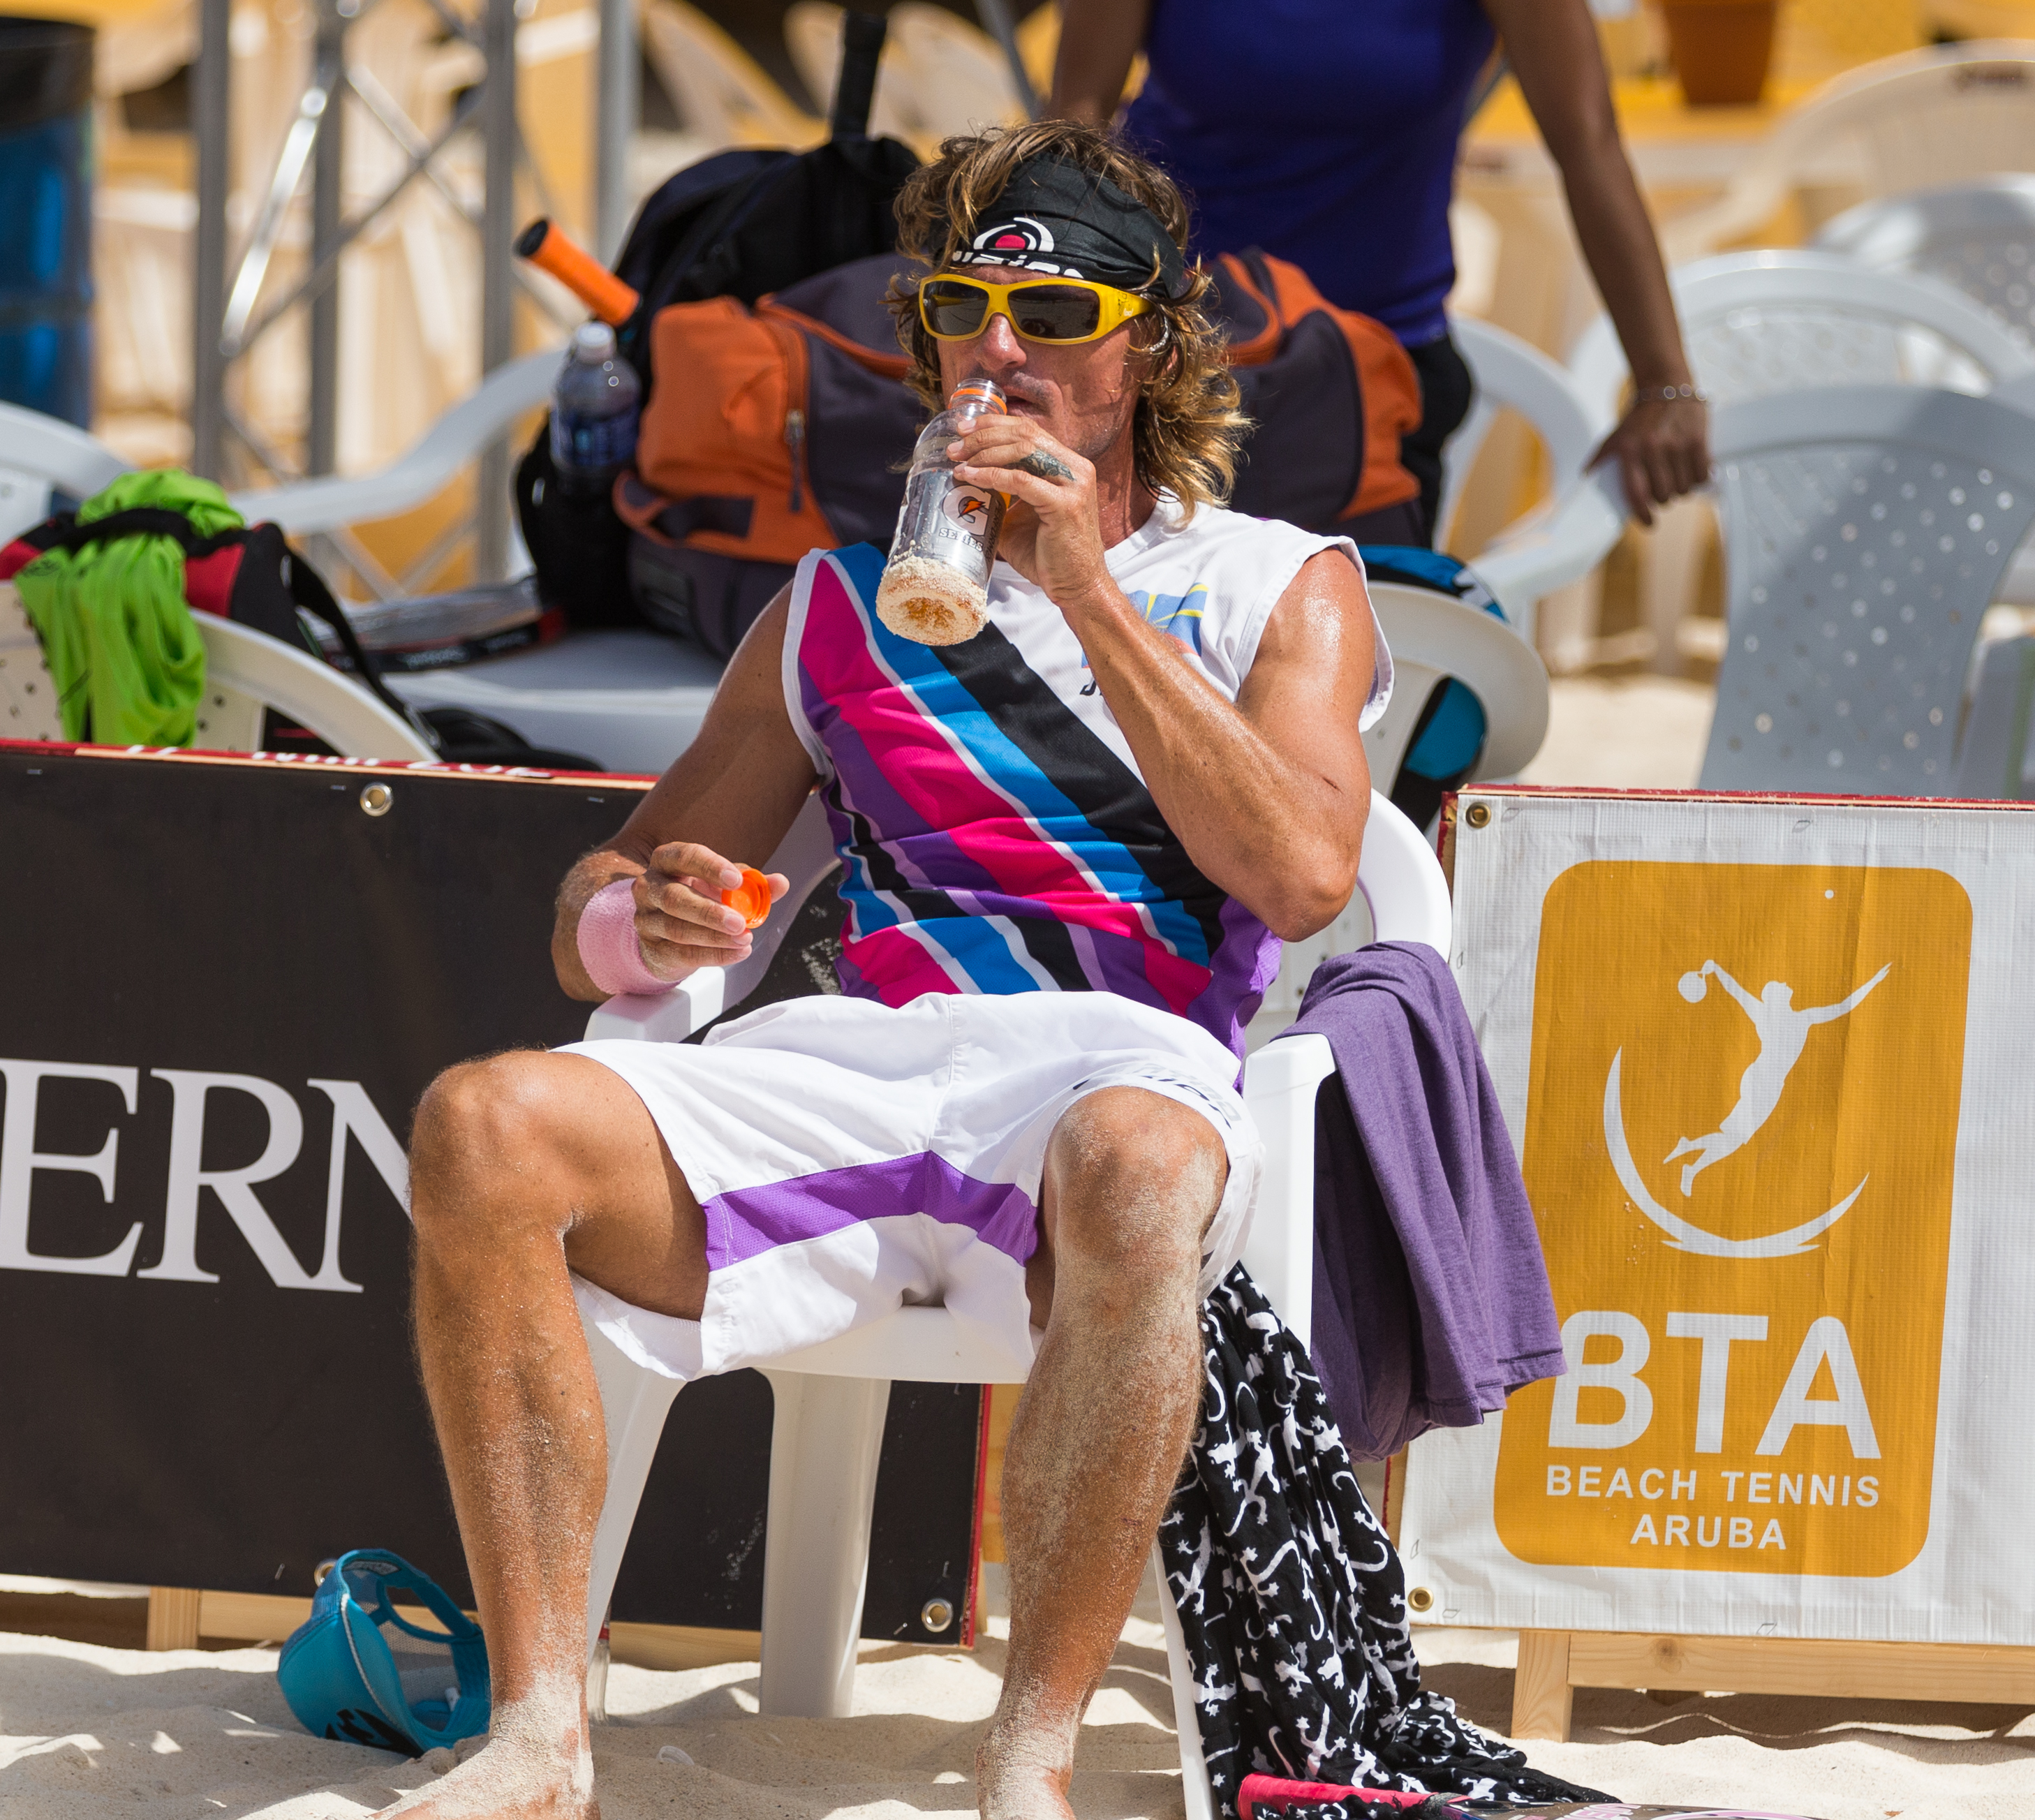 Beach Tennis Player Drinking Water